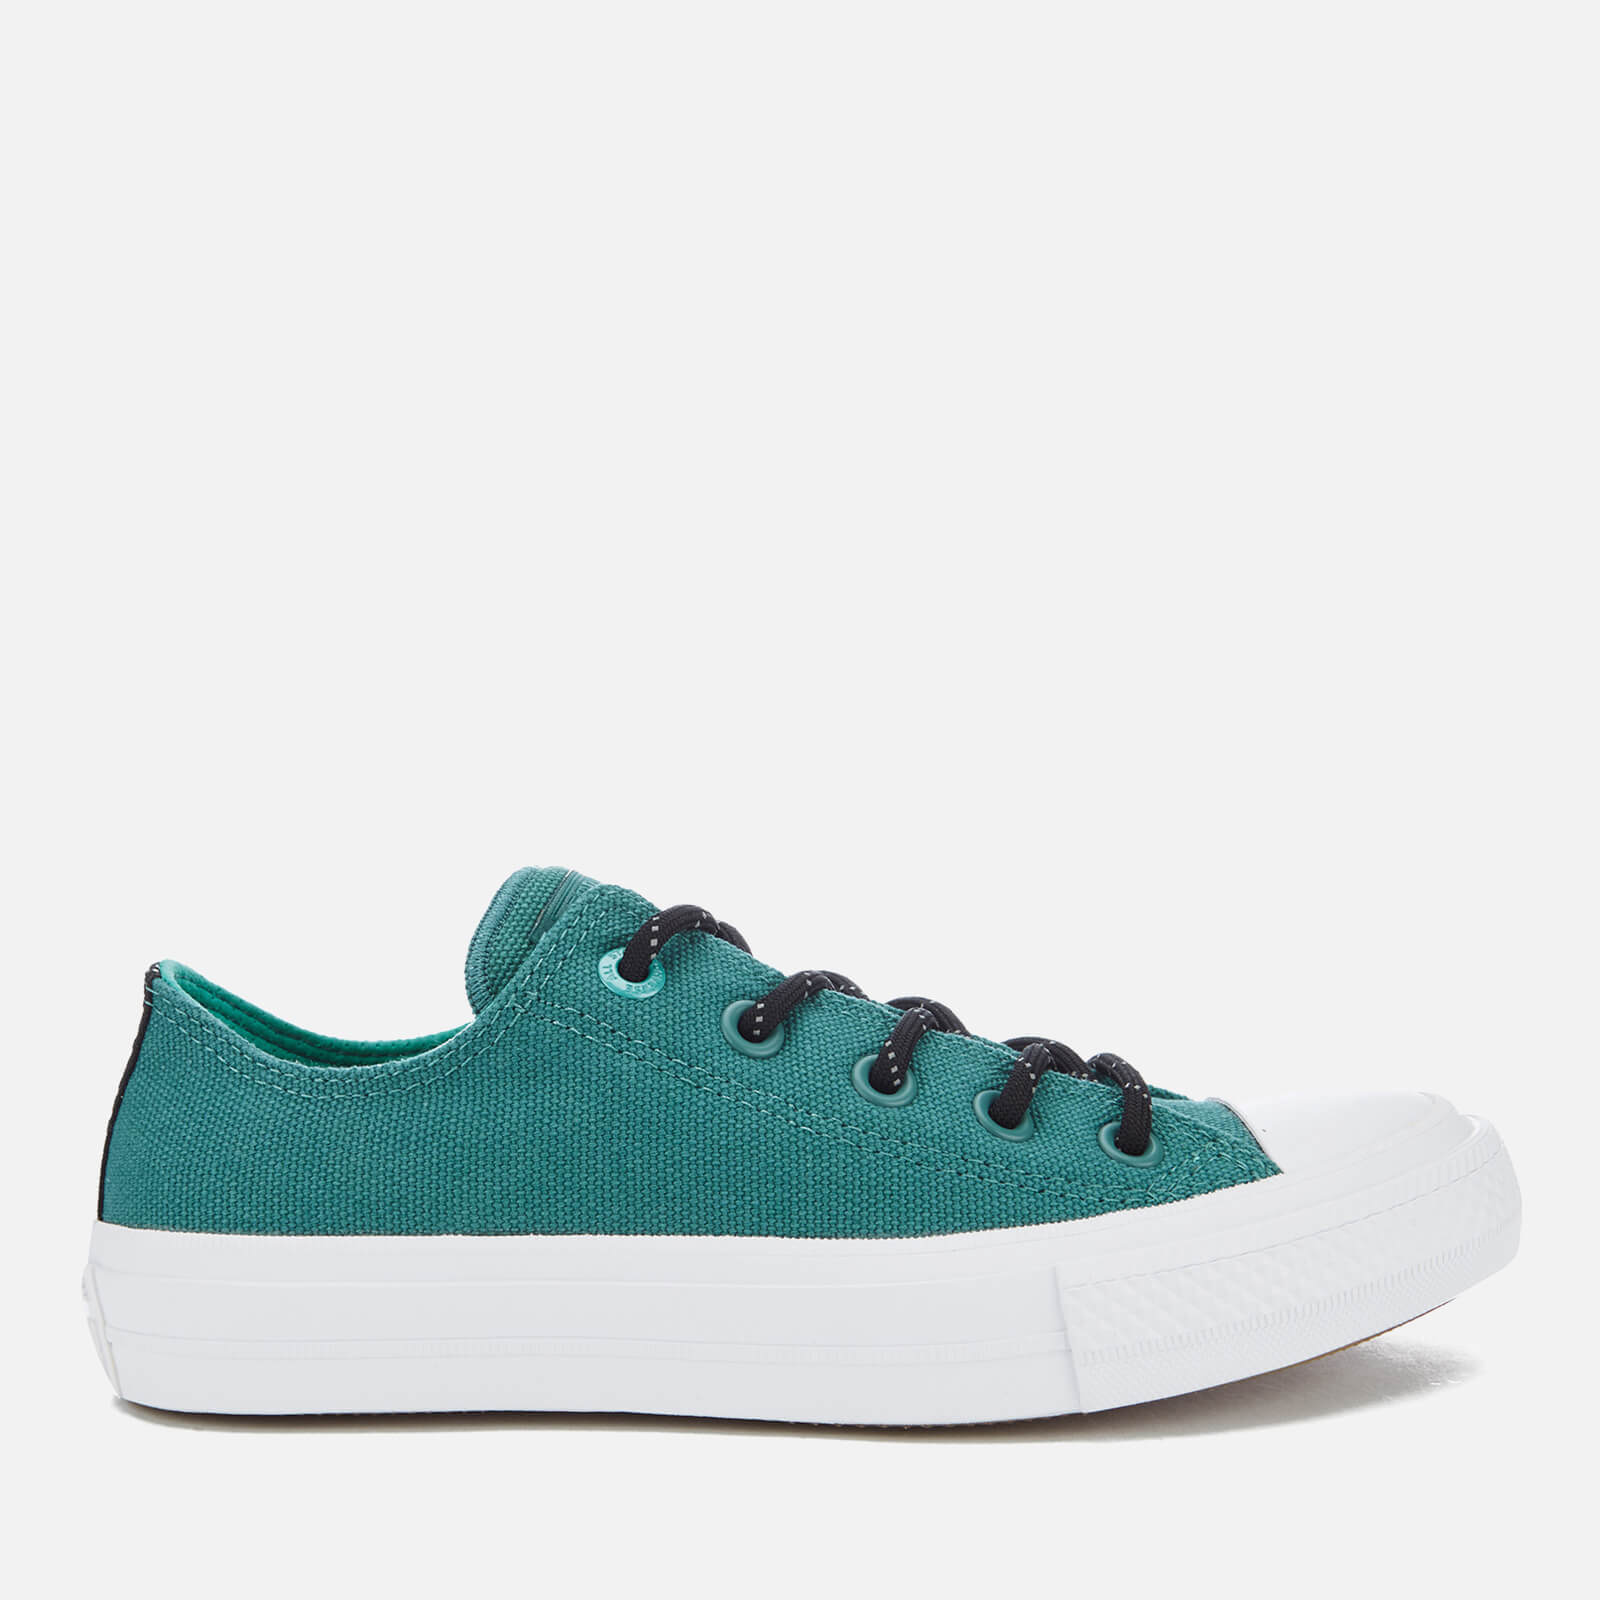 8379b2b10f6b78 Converse Women s Chuck Taylor All Star II Shield Canvas Ox Trainers - Cool  Jade White Aegean Aqua - Free UK Delivery over £50